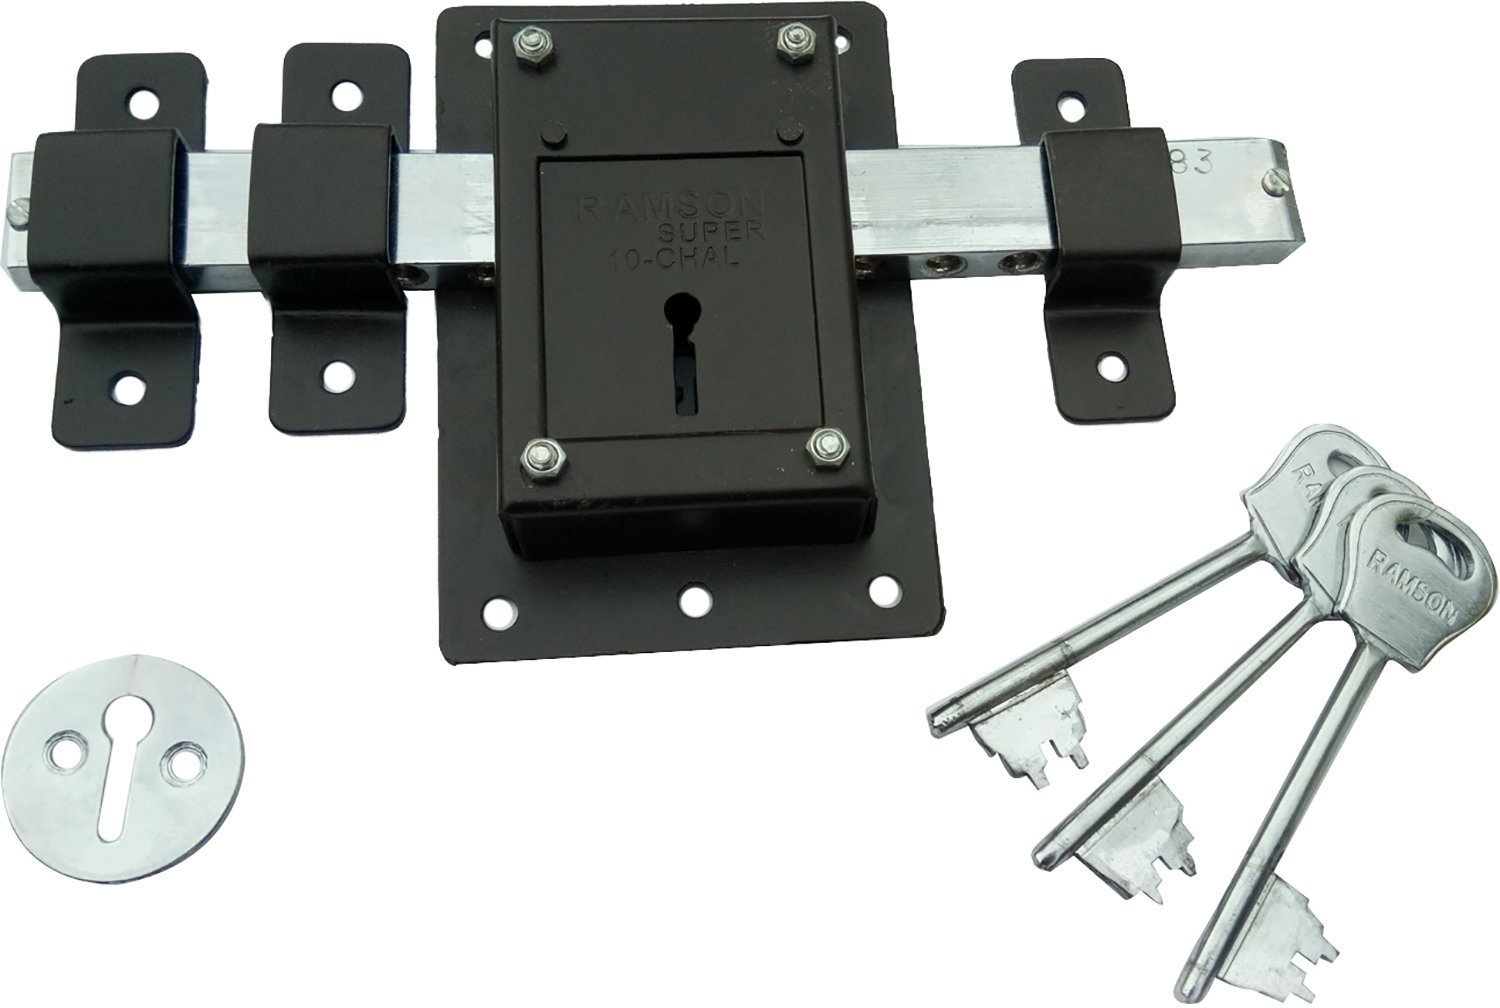 high security door locks. ramson 10 chal iron door lock with 3 keys for high security operated from both side of the brown_141 amazonin home improvement locks